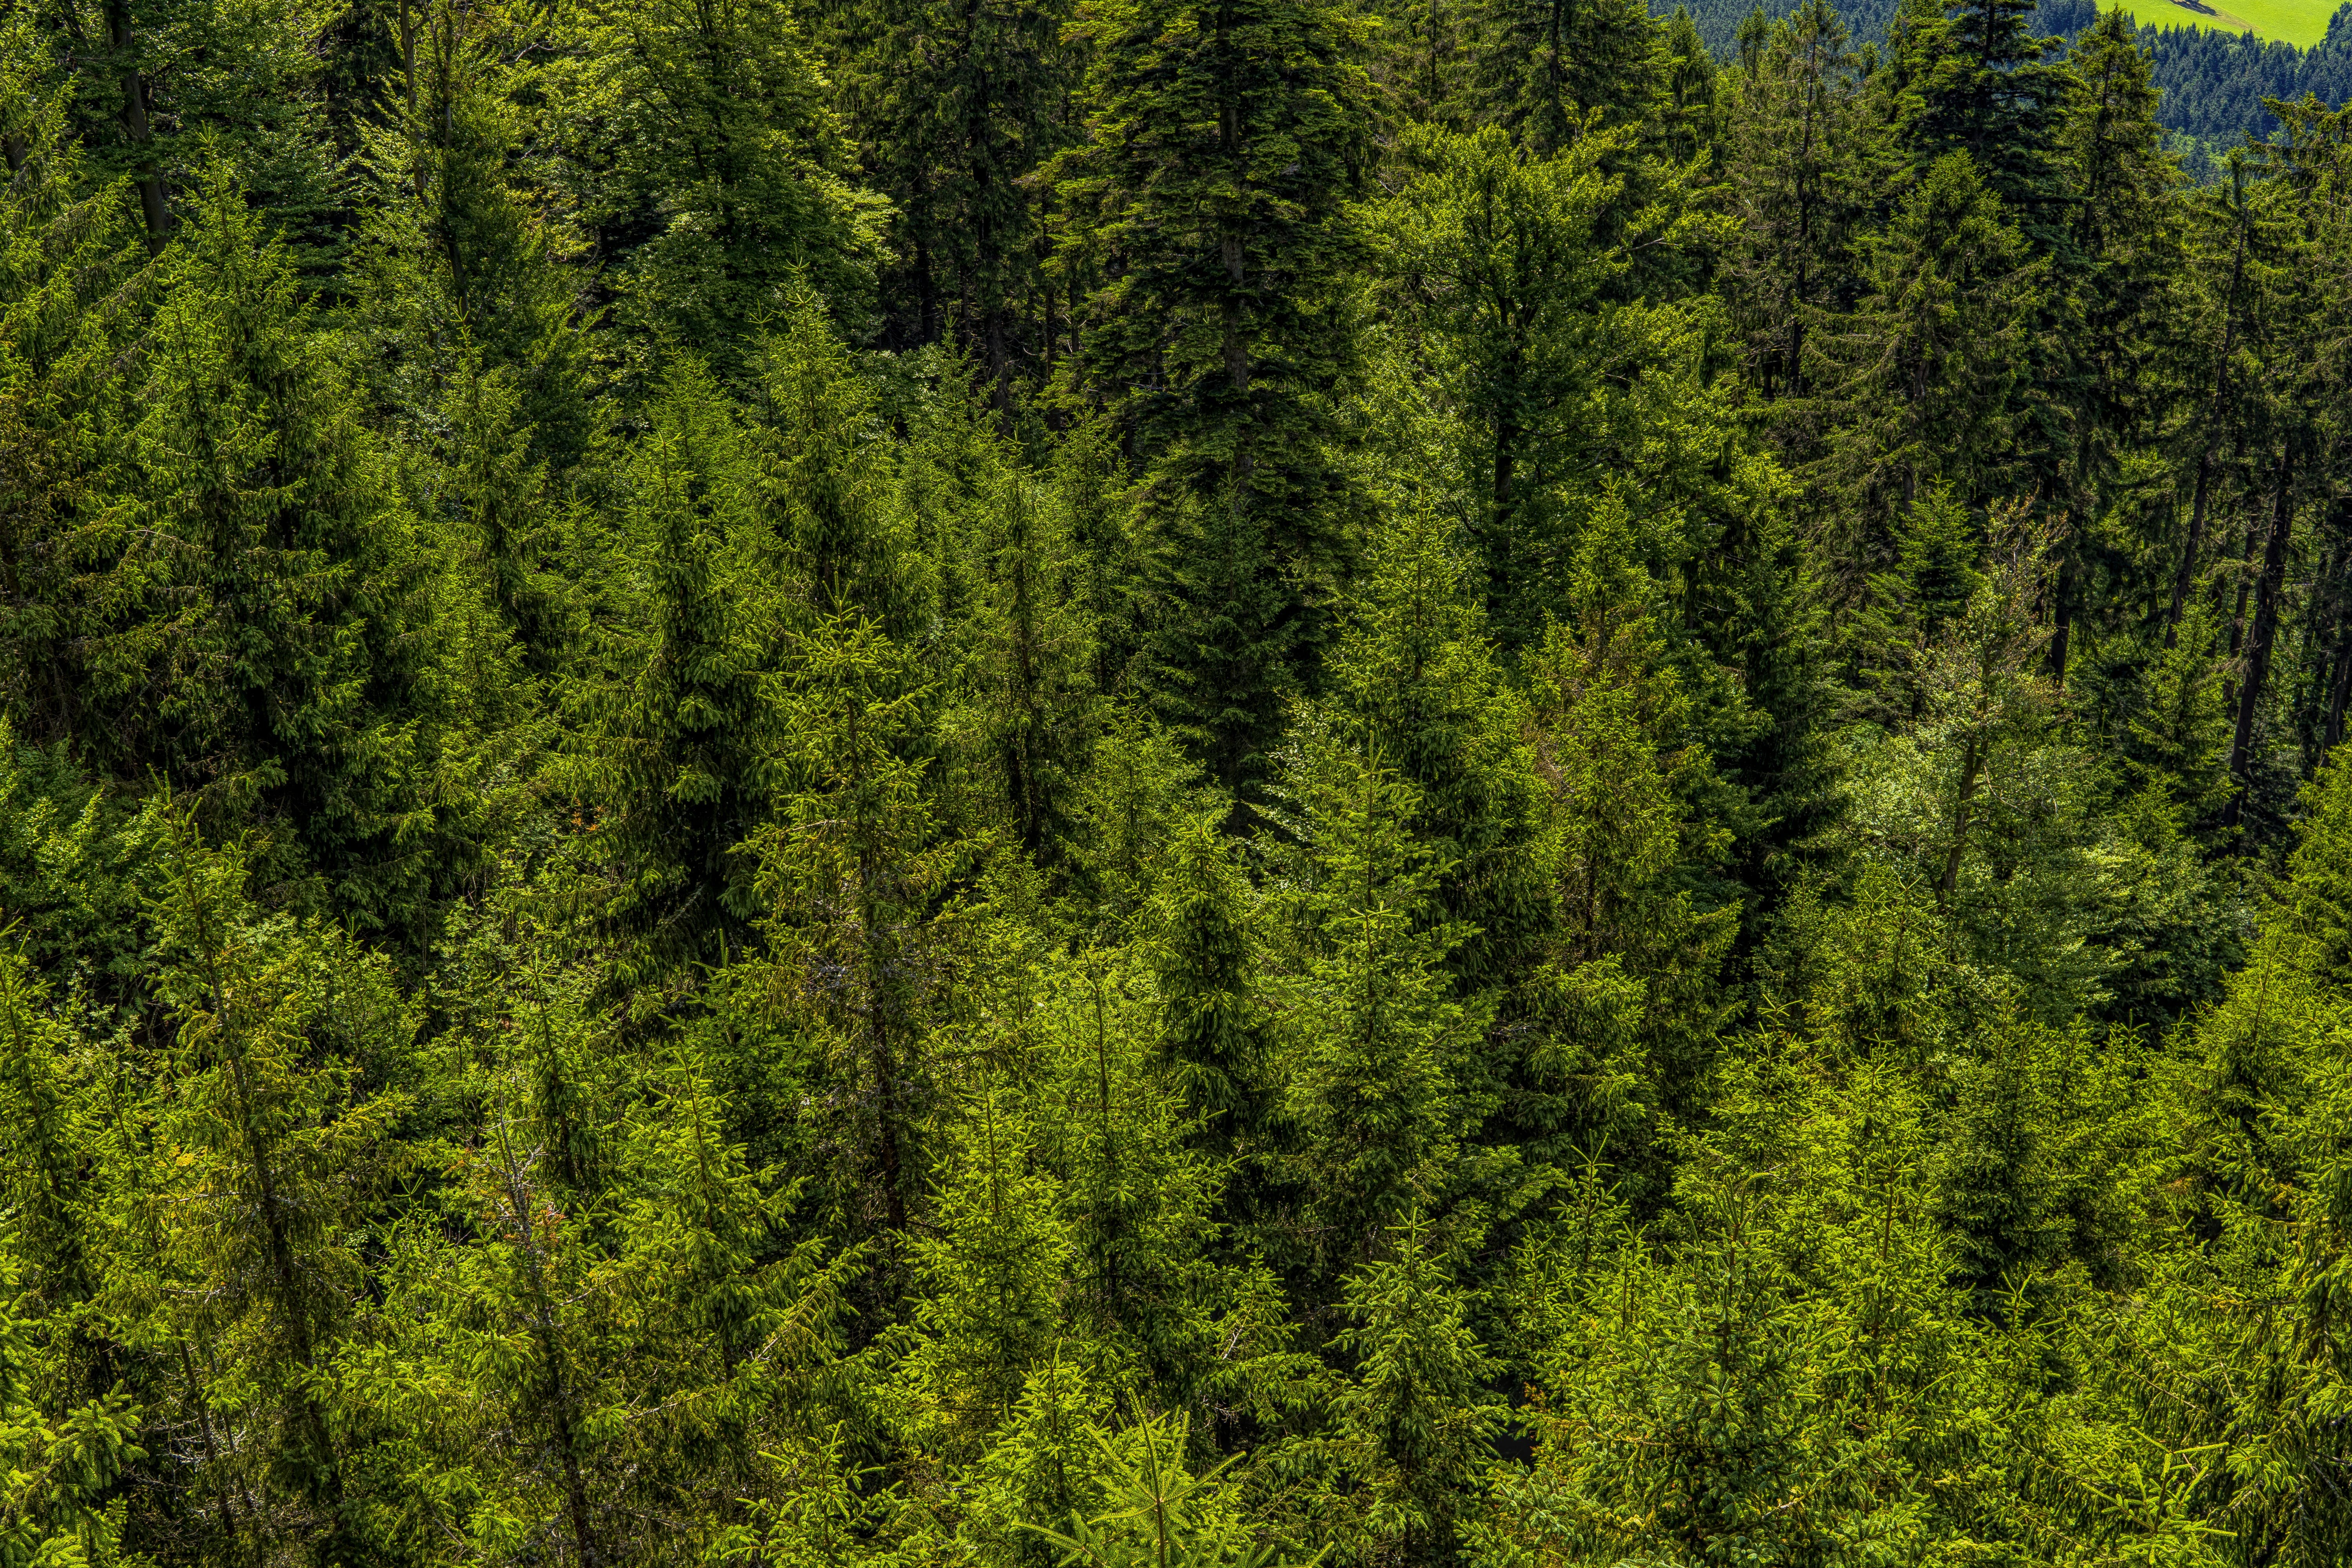 of bavarian forest, branch, branches, conifer